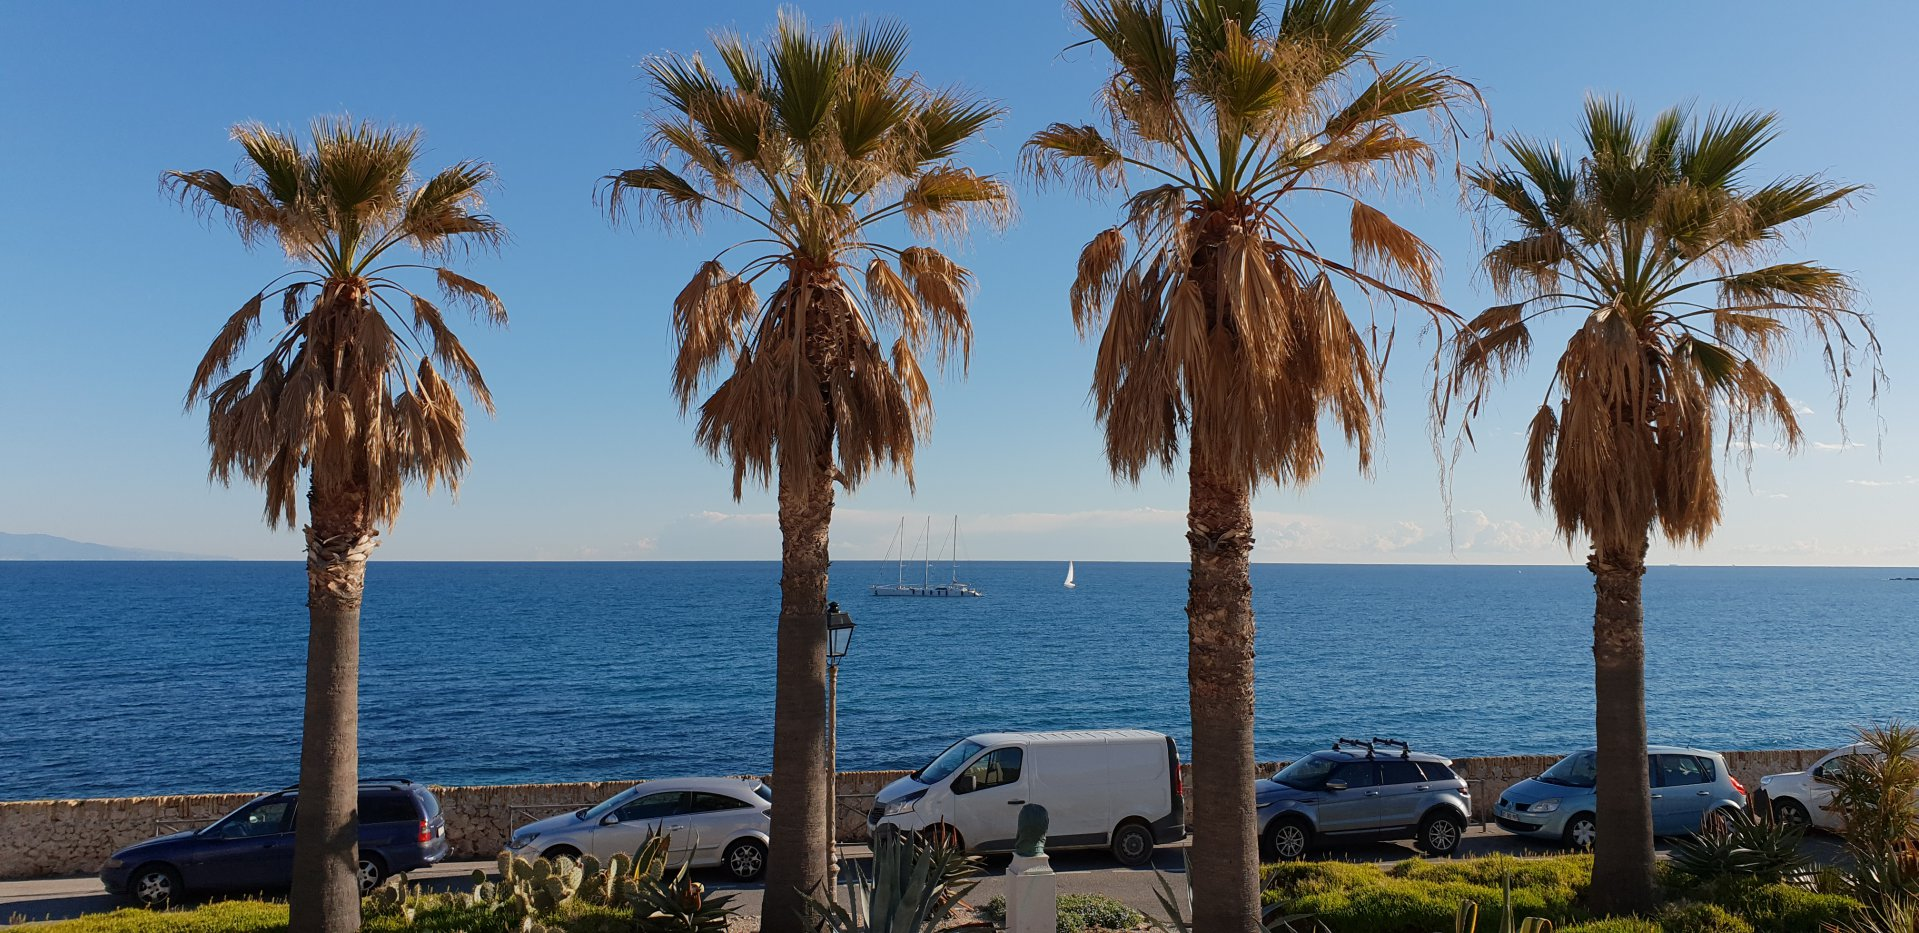 VIEIL ANTIBES - HOUSE ON REMPARTS ! 3 BEDROOMS ON 2 FLOORS !